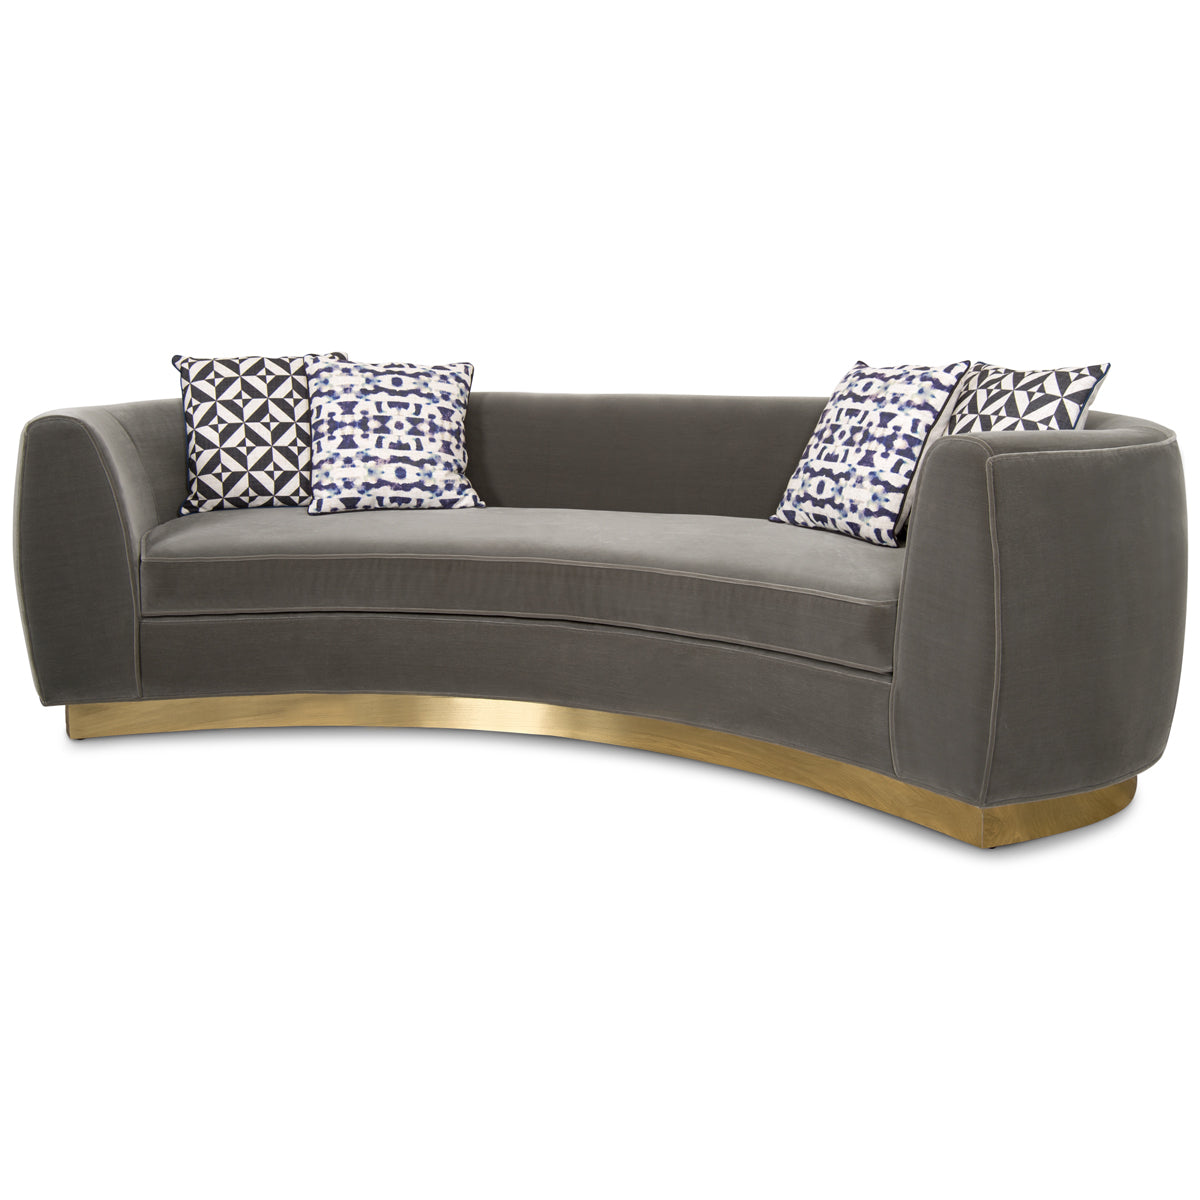 St. Germain Sofa In Velvet